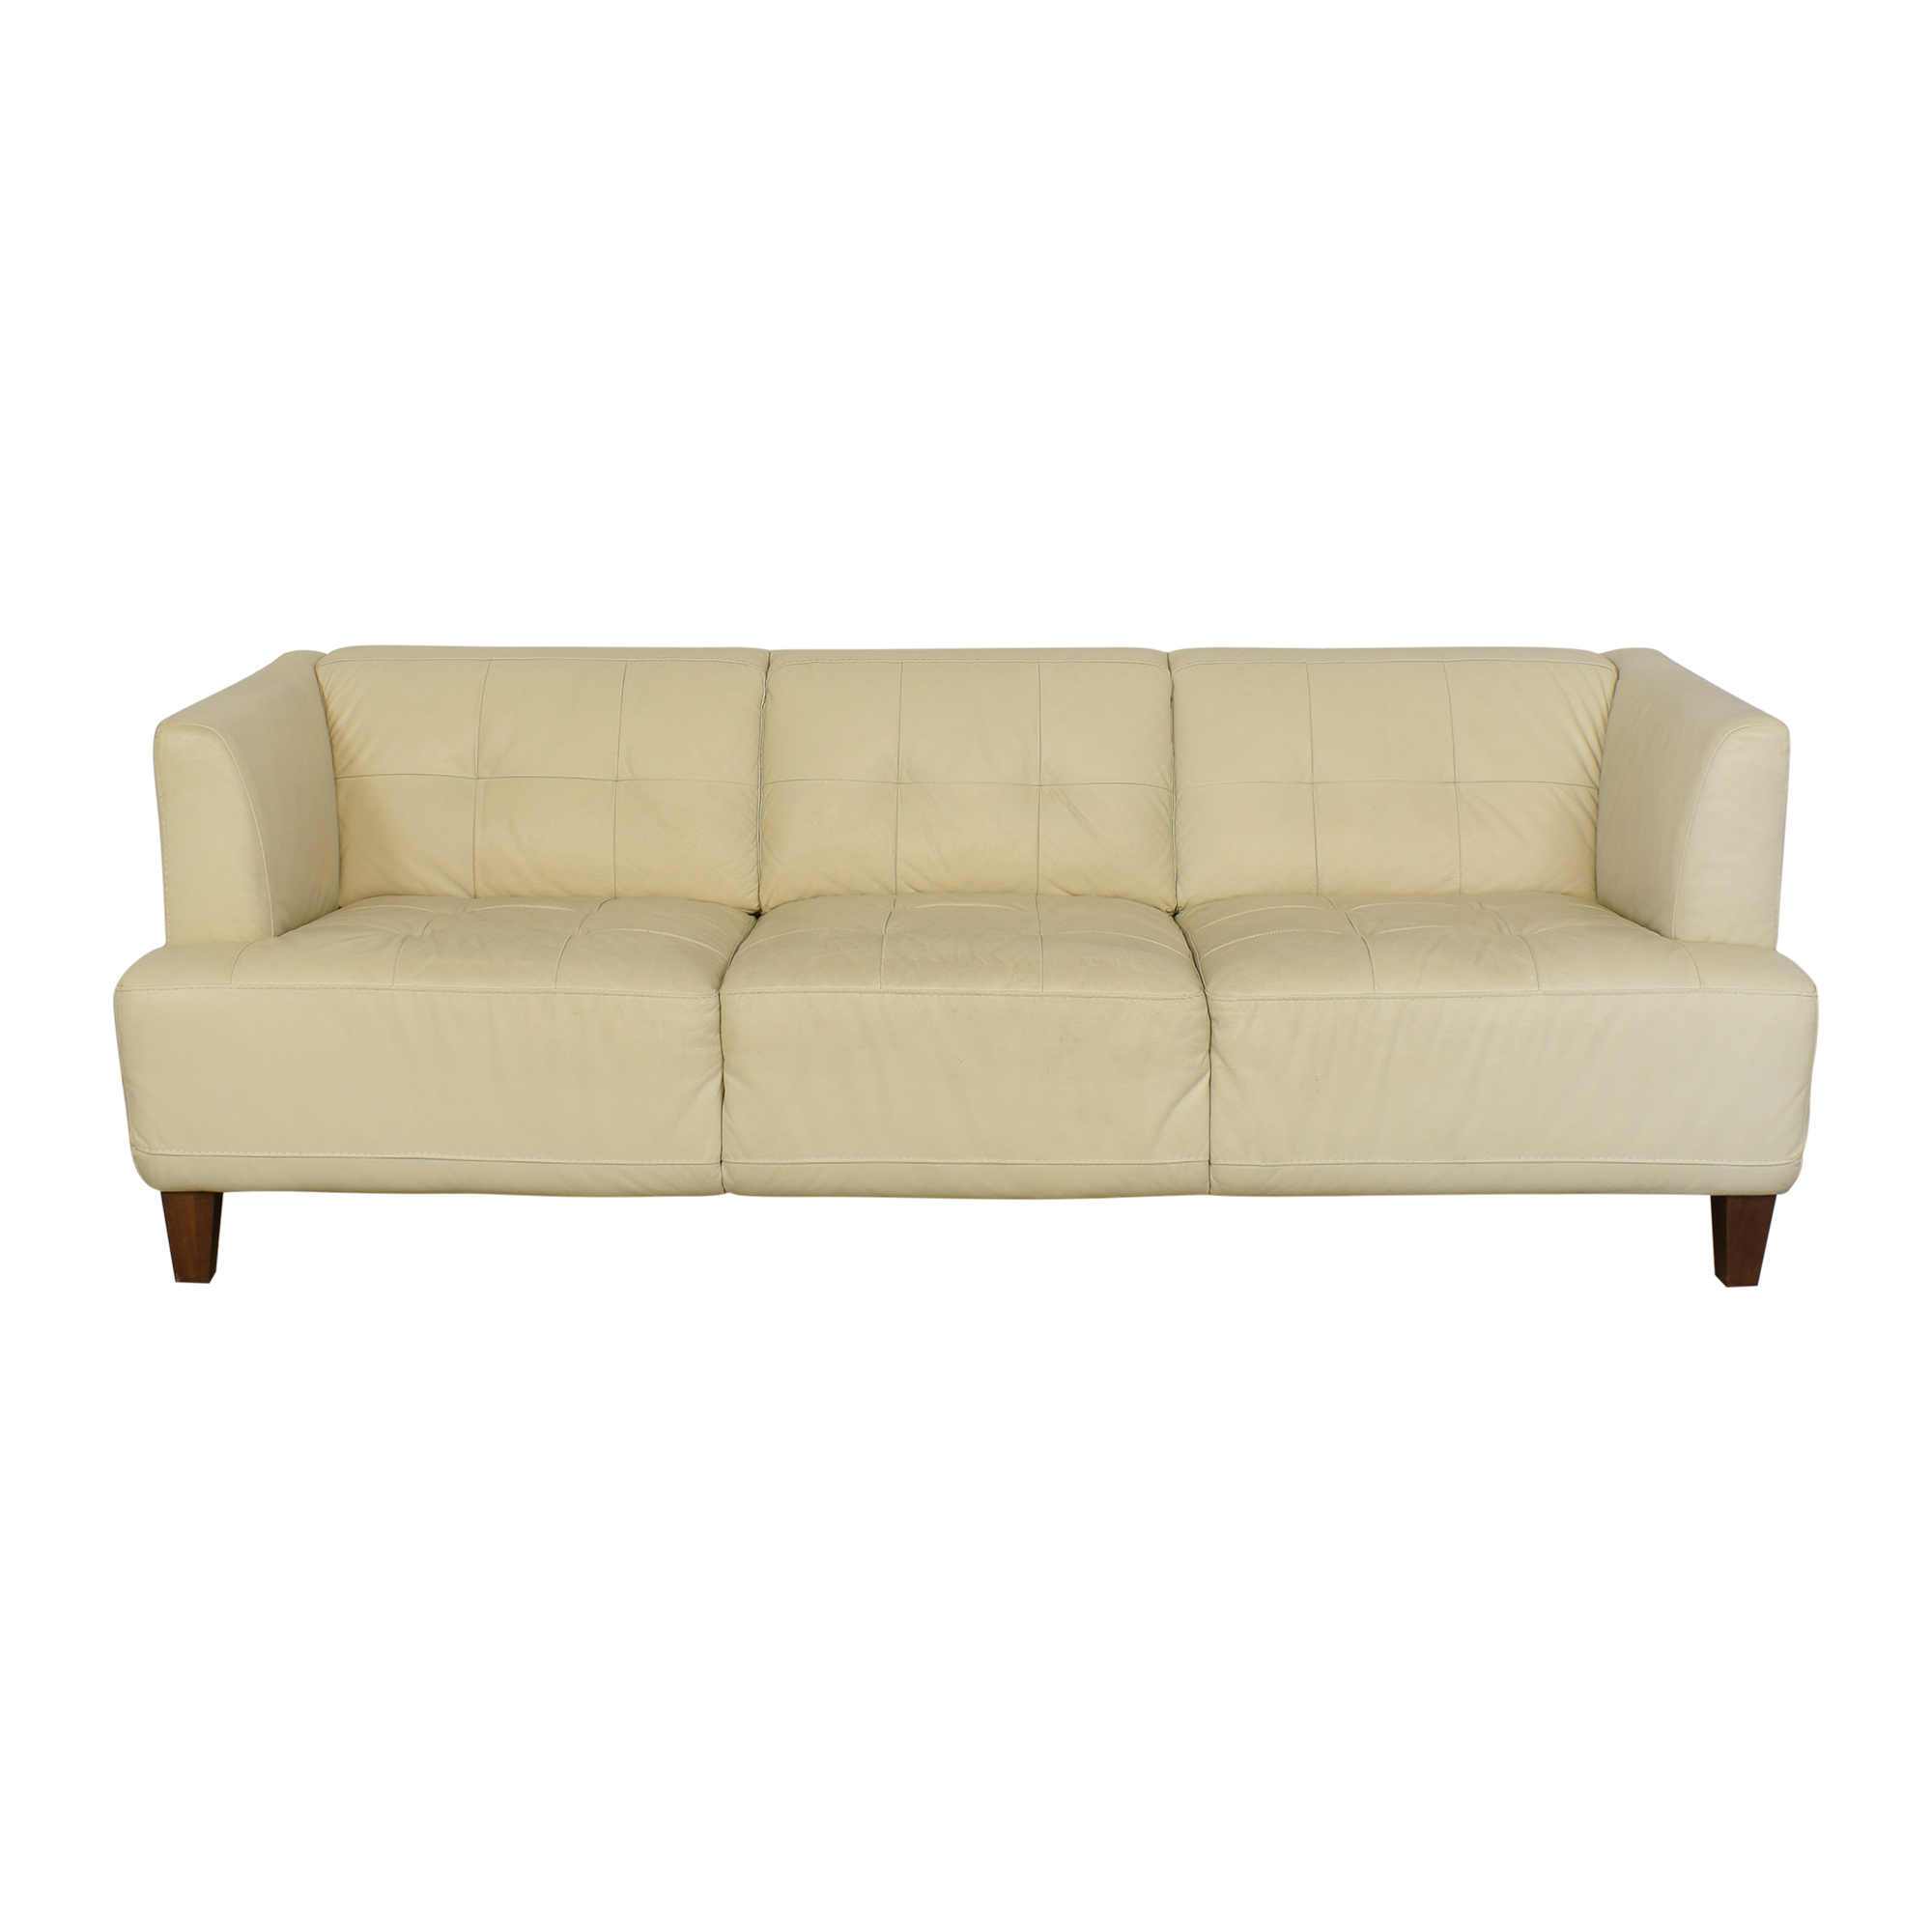 Macy's Macy's Three Cushion Sofa pa